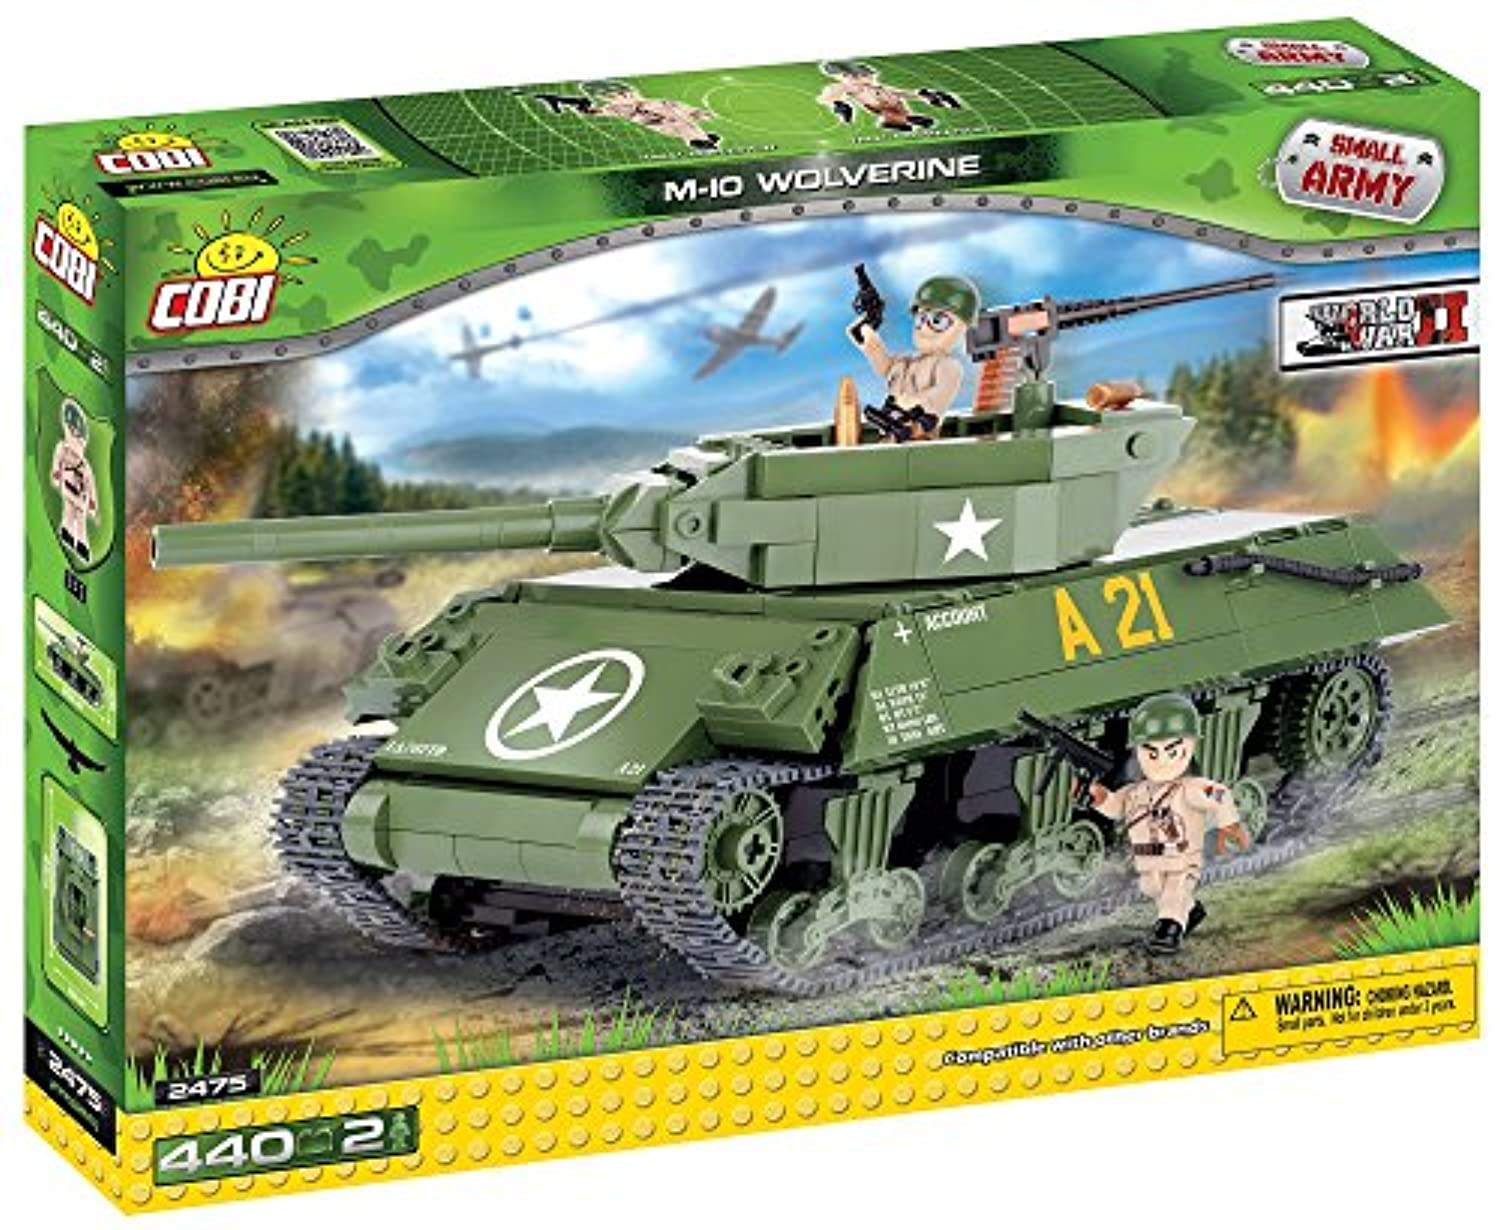 Cobi Small Army ミリタリーブロック WWII #2475 アメリカ軍 M10 ウルヴァリン 駆逐戦車 M10 Wolverine【COBI 日本正規総代理店】